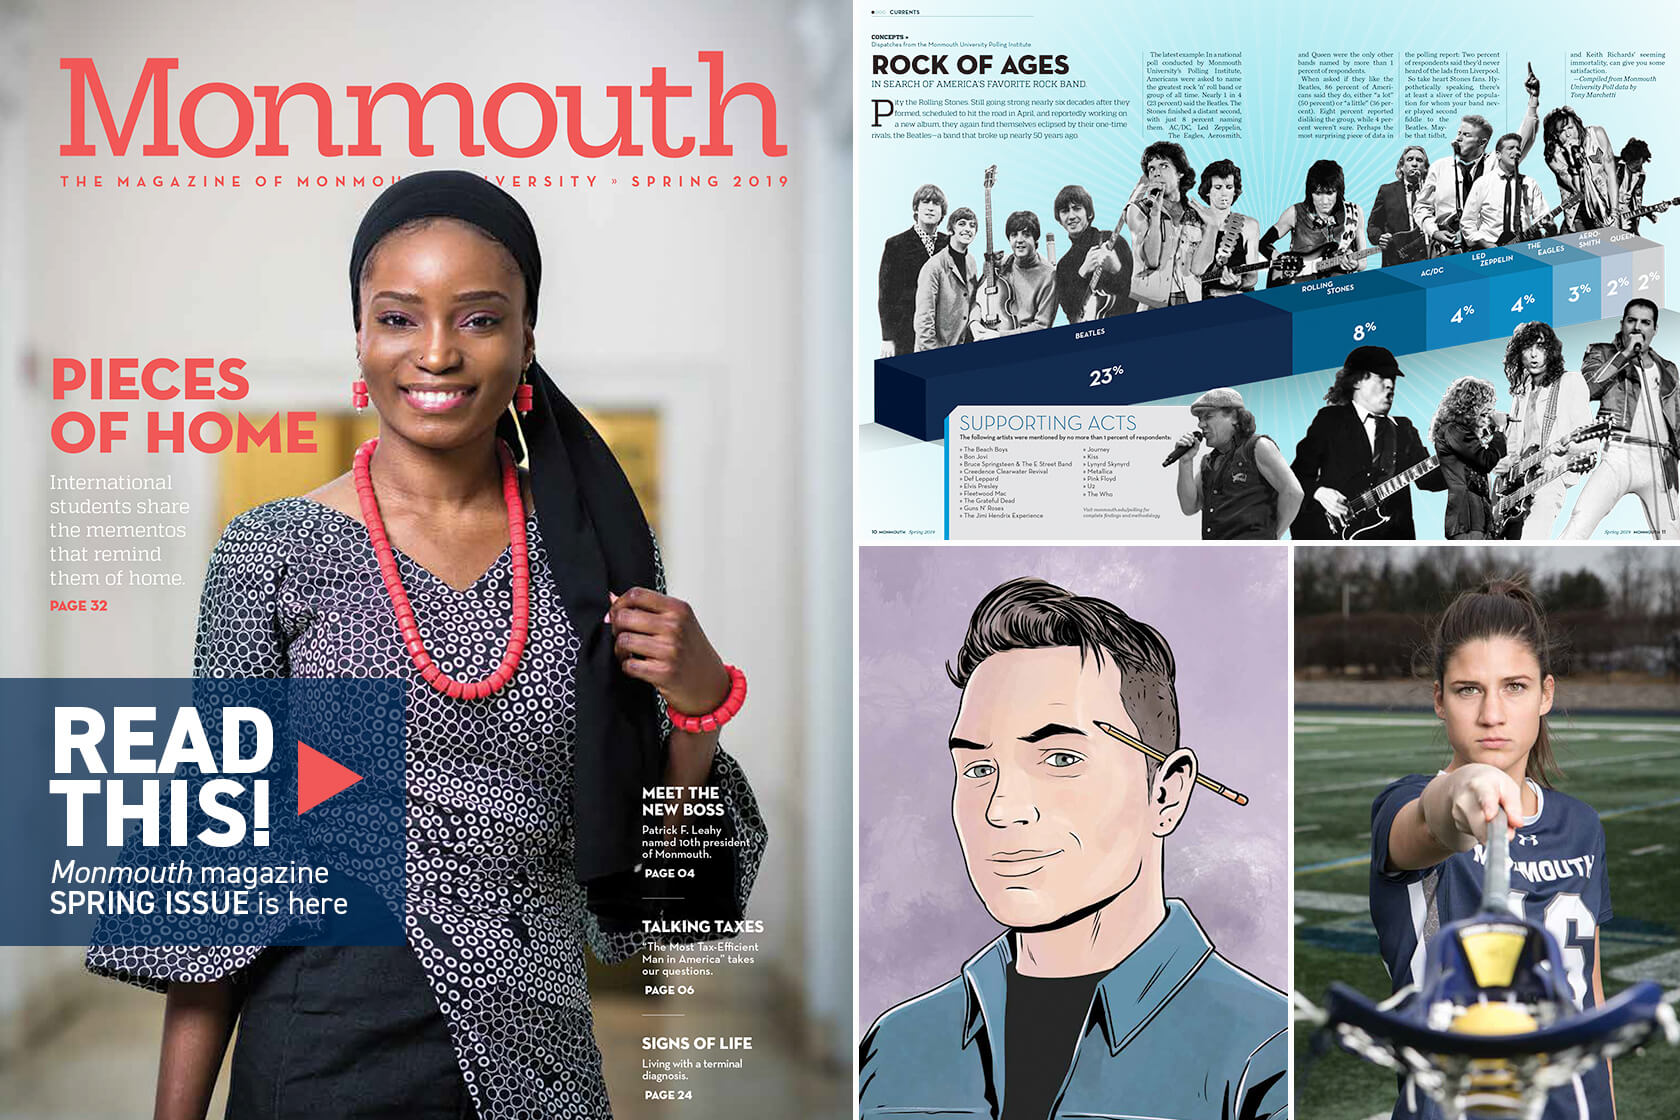 Read This, the Monmouth magazine spring issue is here!